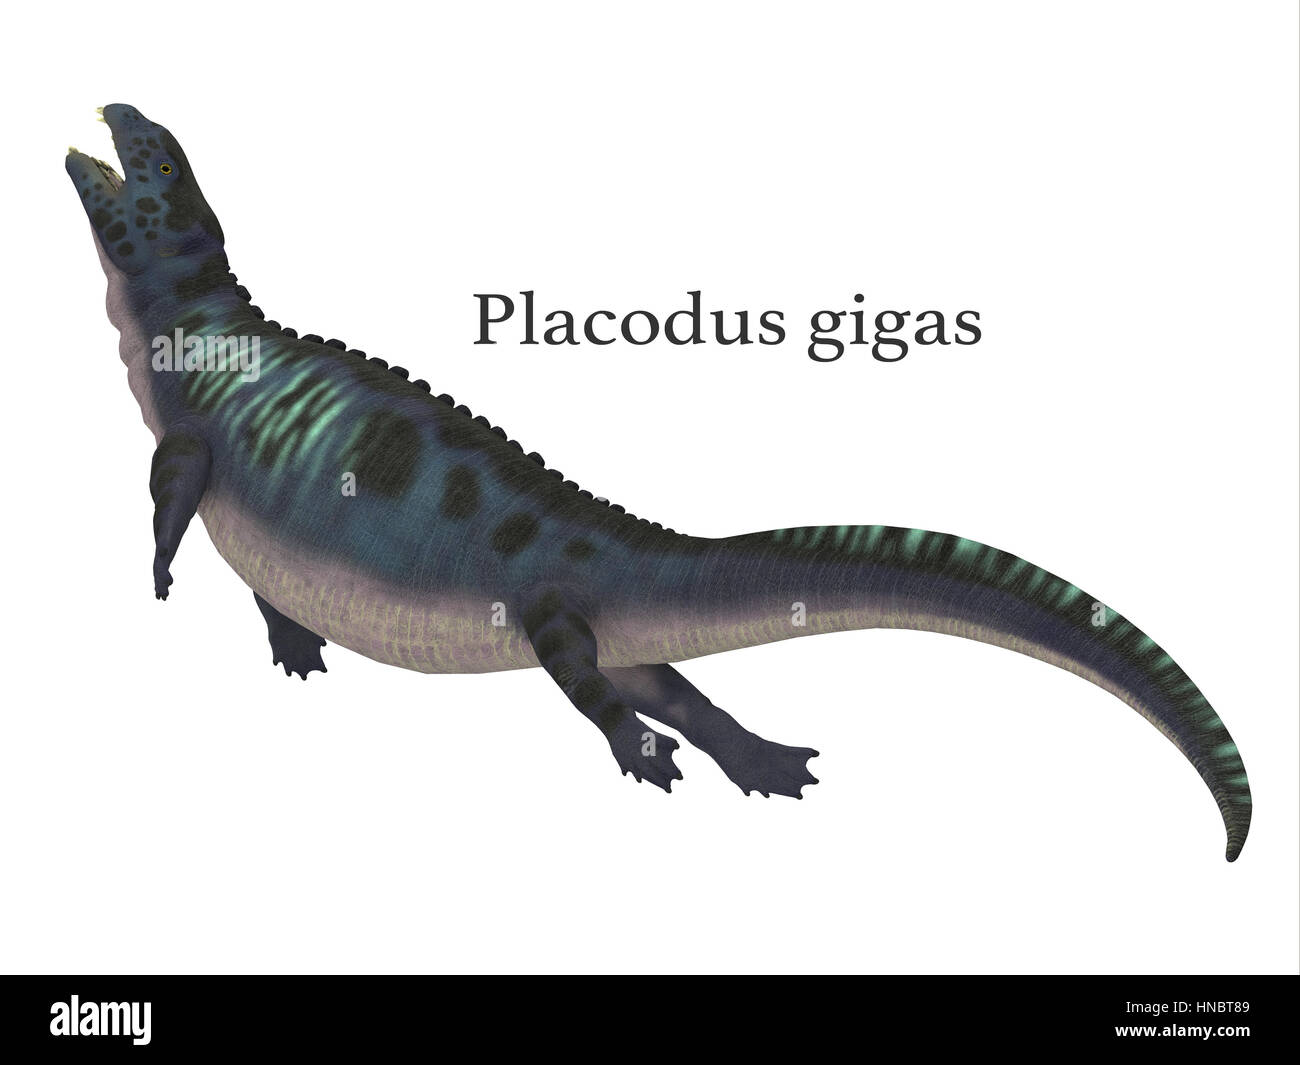 Placodus was a marine reptile that swam in the shallow seas of the Triassic Period in Europe and China. - Stock Image